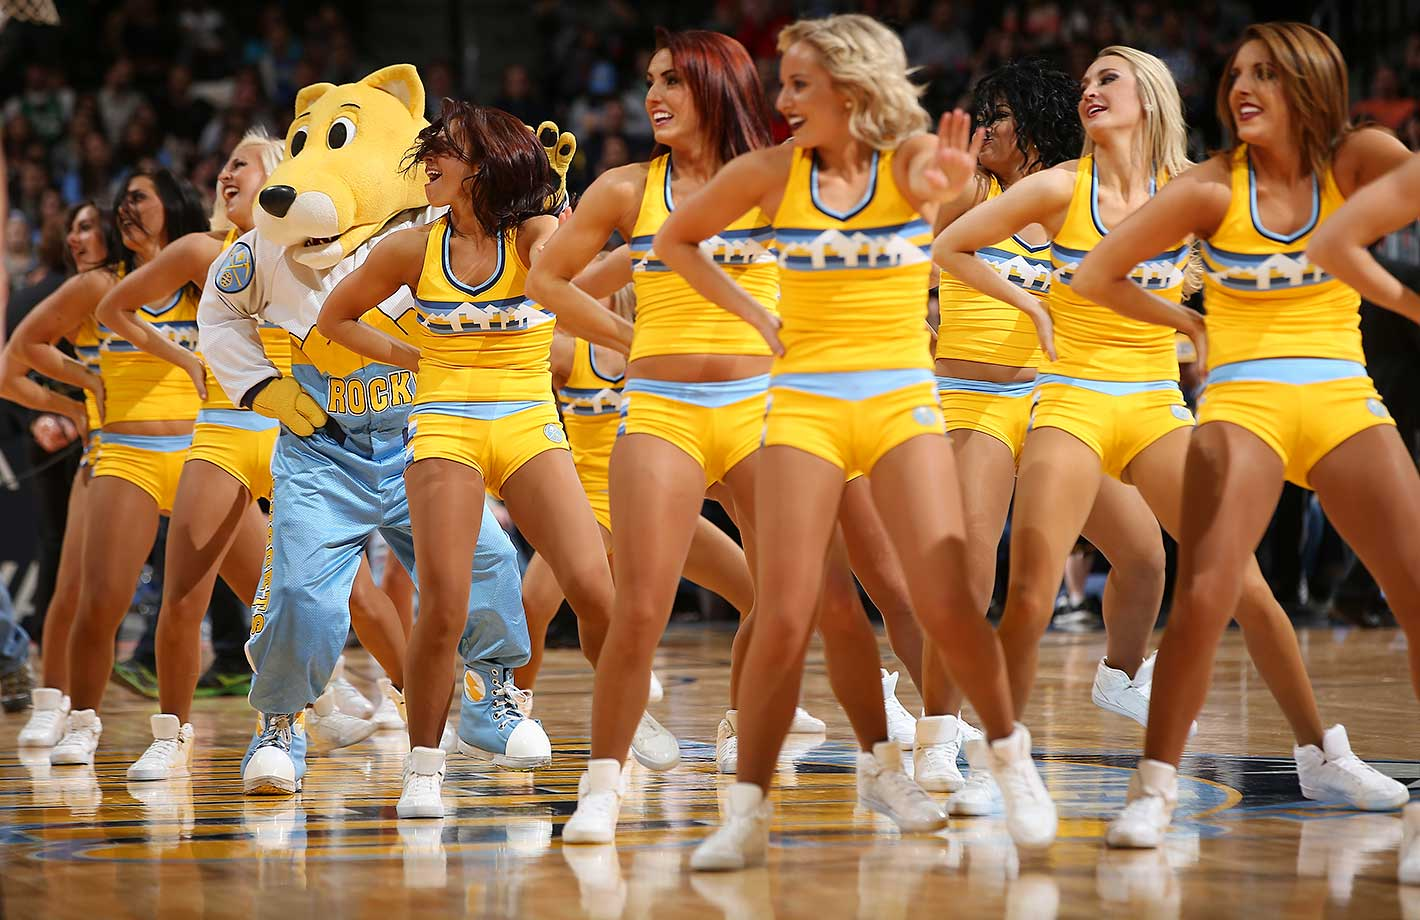 Super Mascot Rocky performs with the Denver Nuggets Dancers.